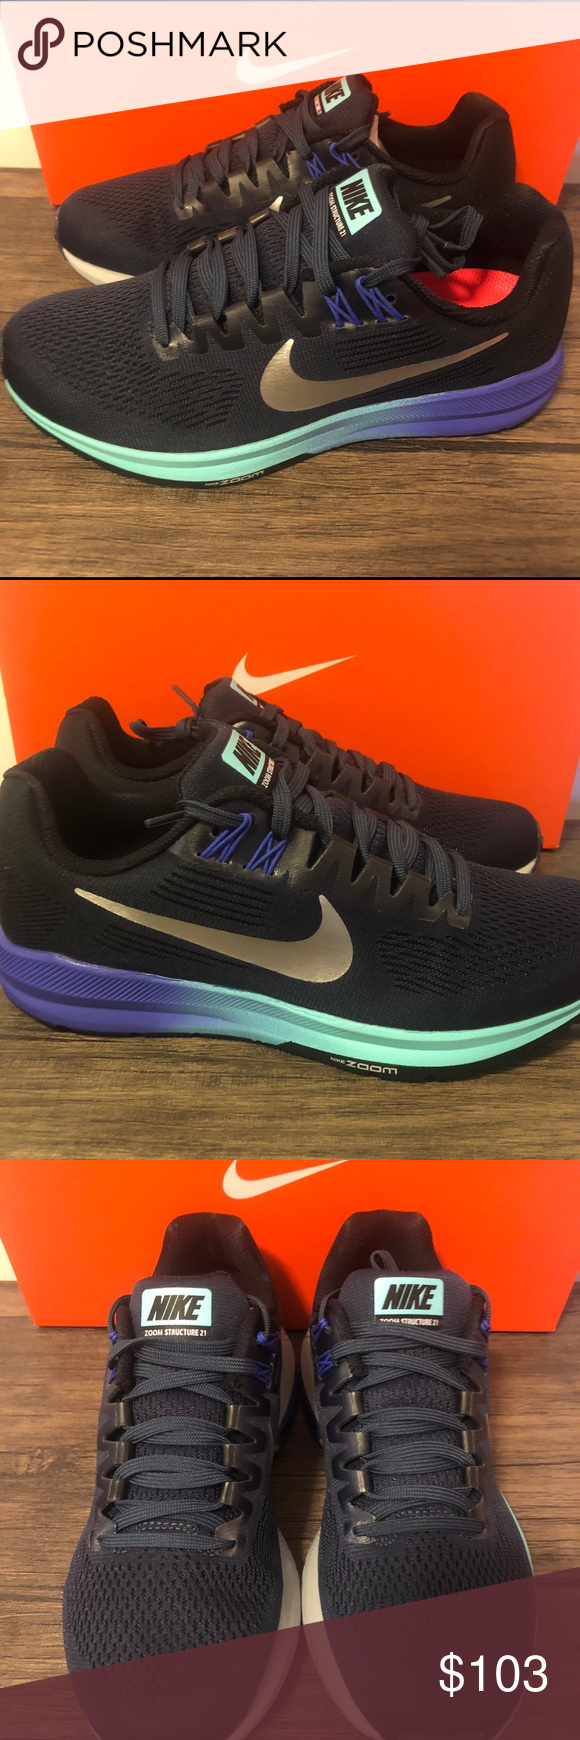 209fcbcc92f Women s Nike Air Zoom Structure 21 Stability Women s Nike Air Zoom  Structure 21 Stability running shoe 904701-401 New in box Size 7 Nike Shoes  Athletic ...